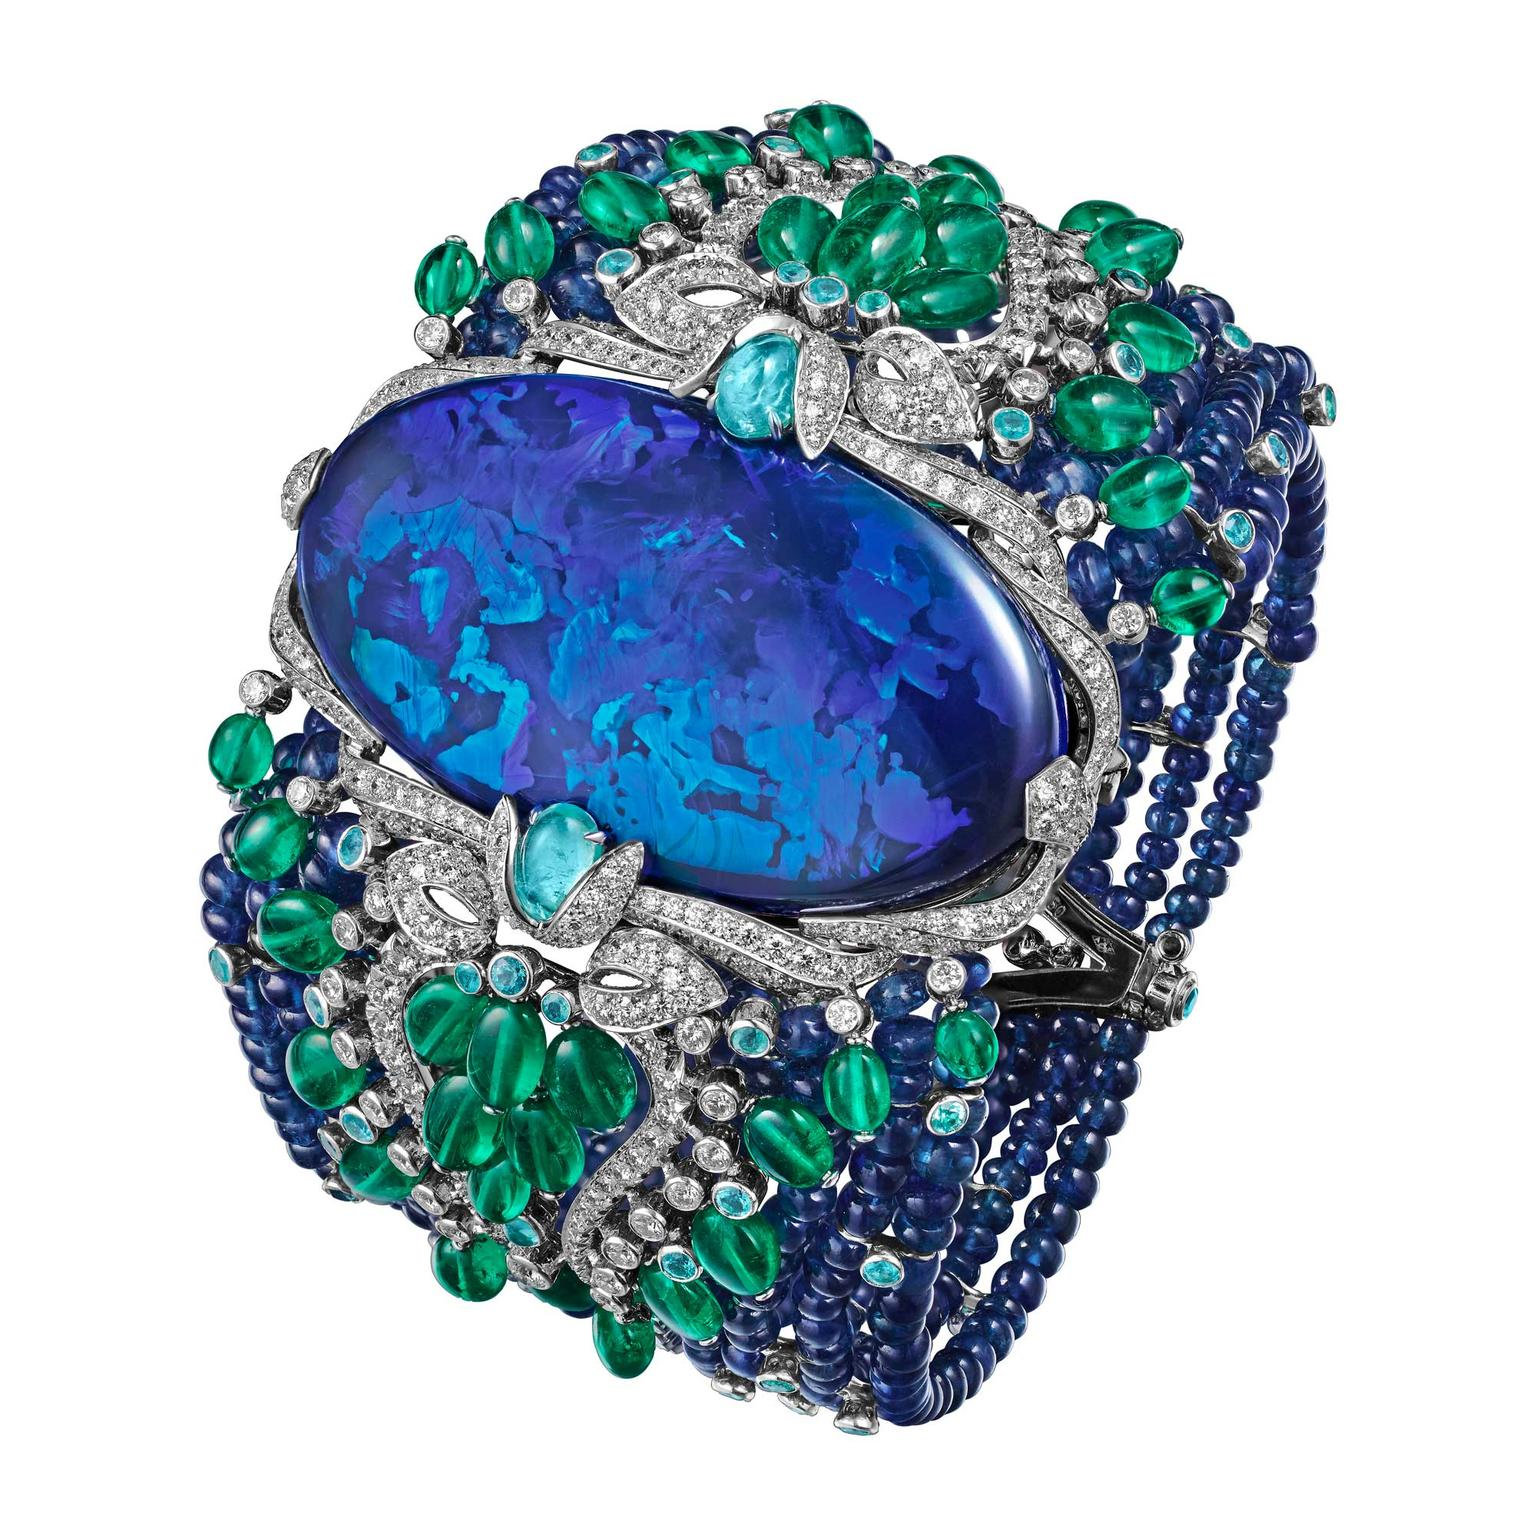 Cartier Étourdissant Lagon bracelet with black opal